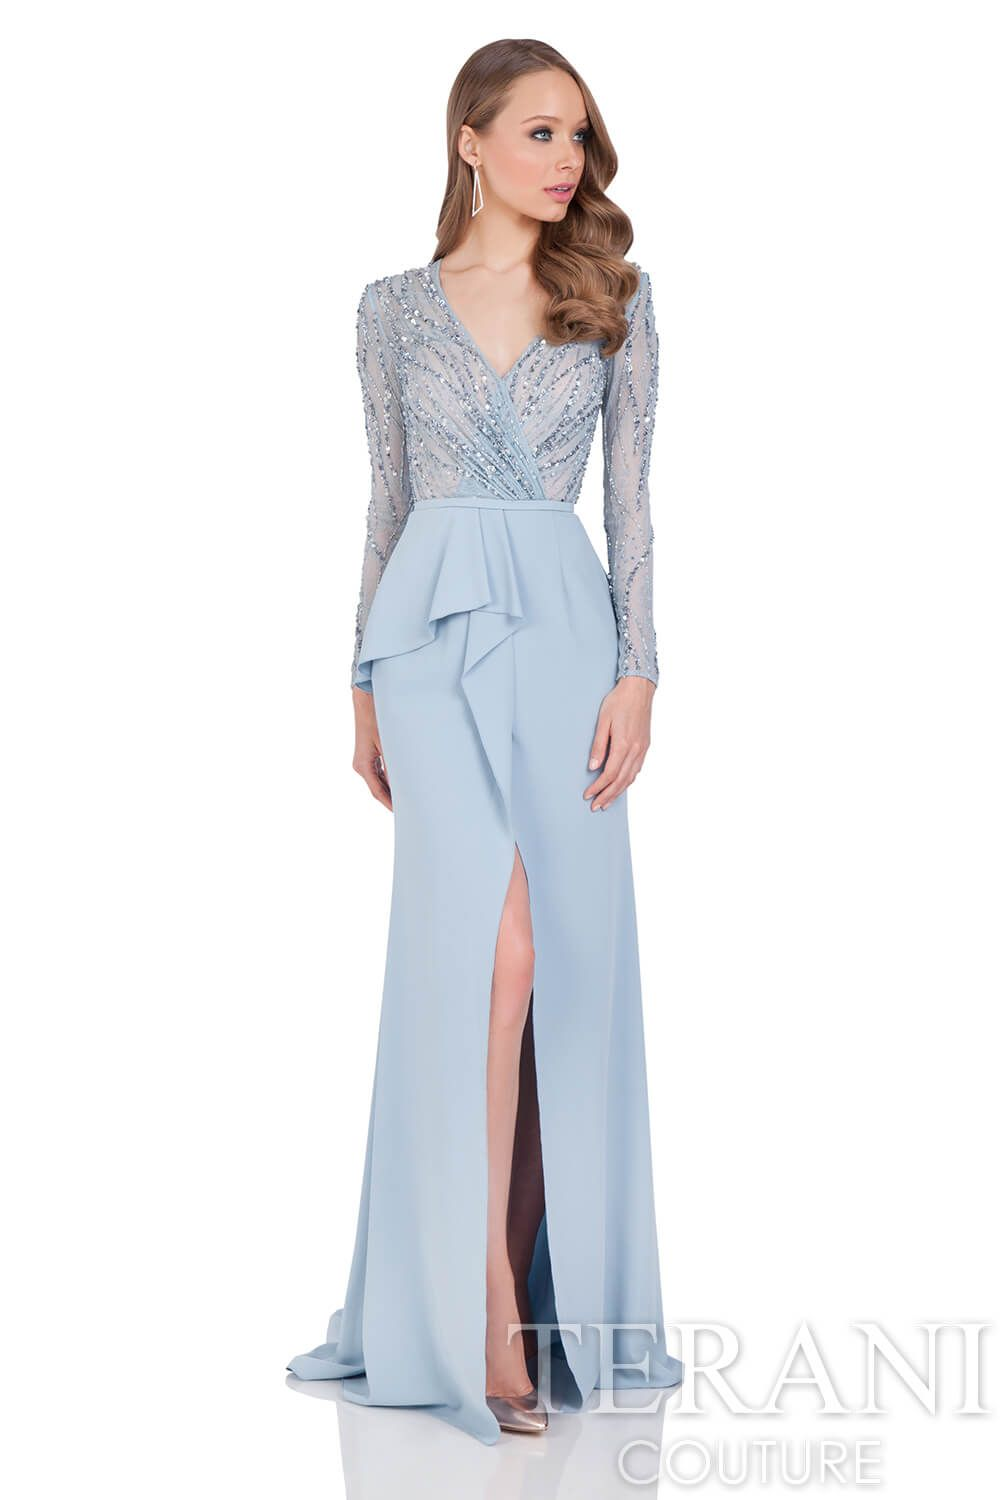 8995d6af9e54 Lace top mother of the bride gown with three quarter wrap around peplum  leading into the front center slit up the stretch crepe trumpet skirt.